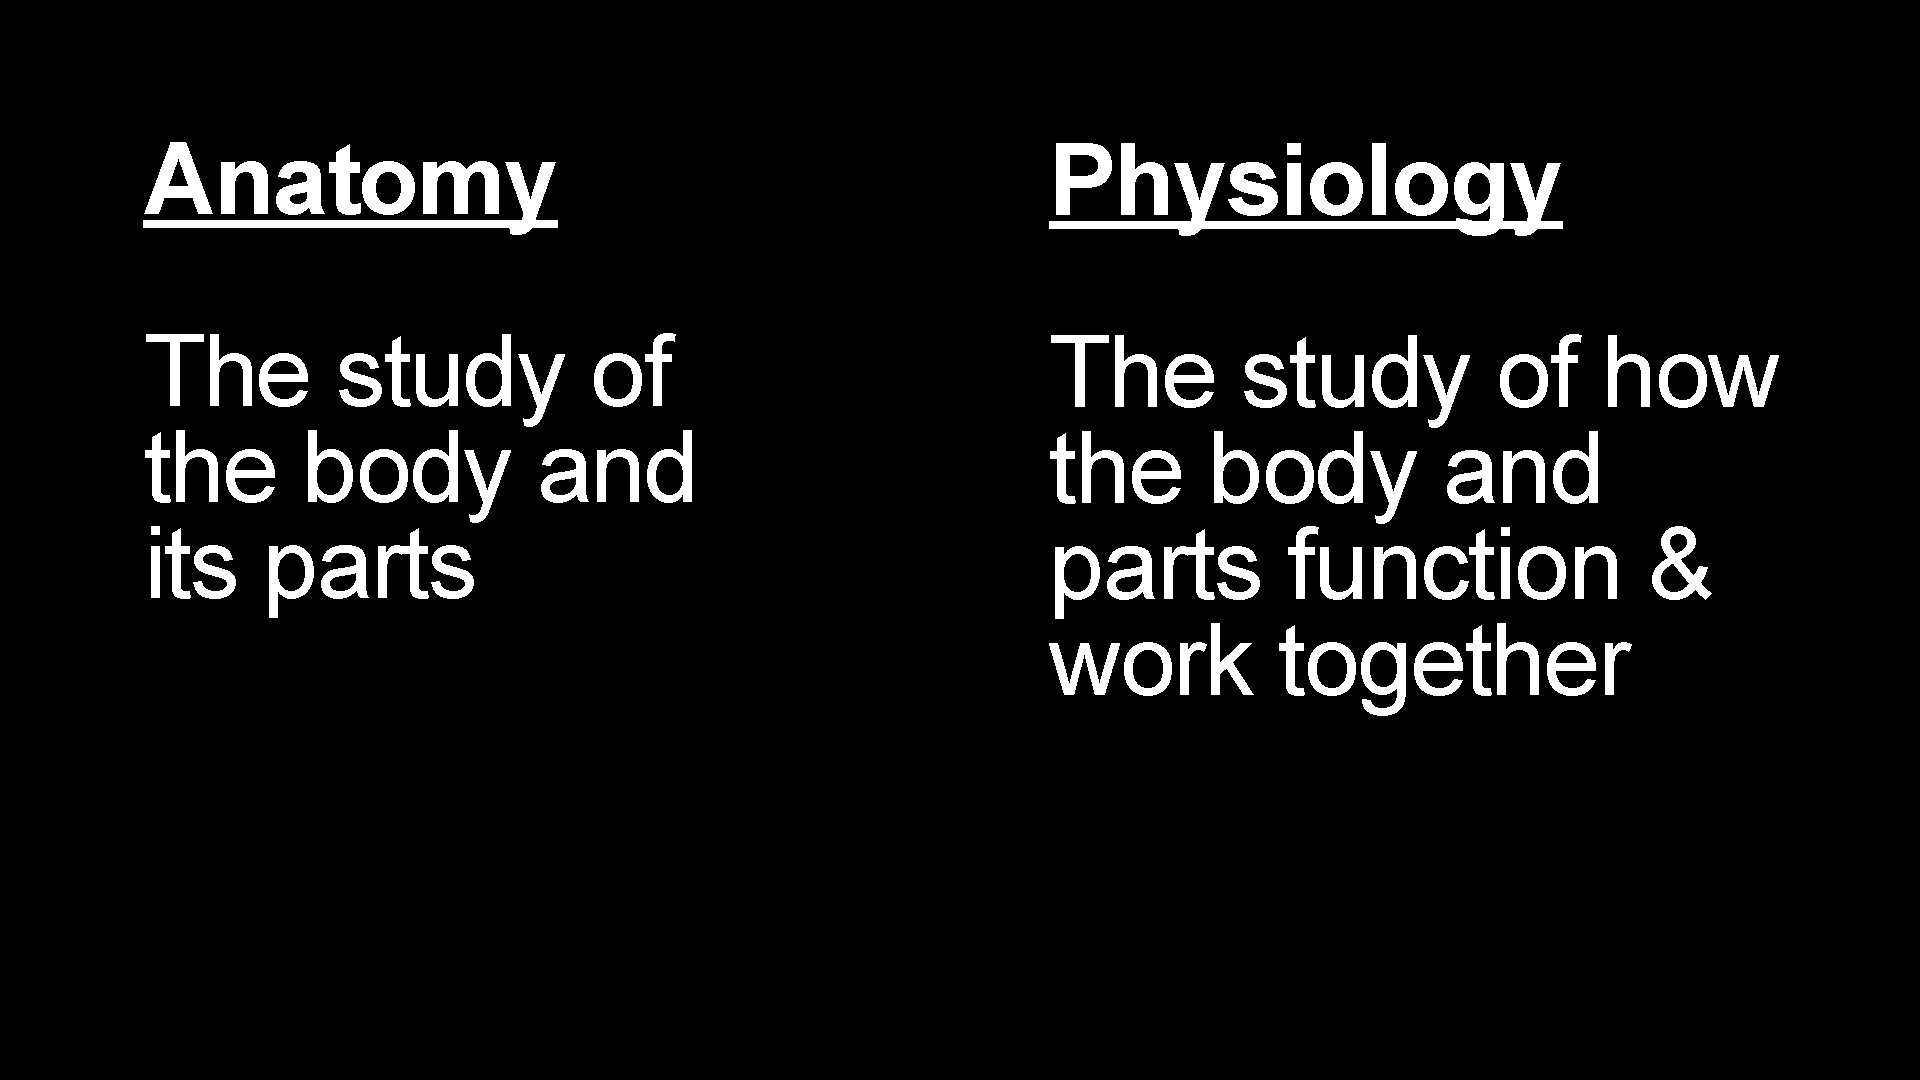 Anatomy Physiology The study of the body and its parts The study of how